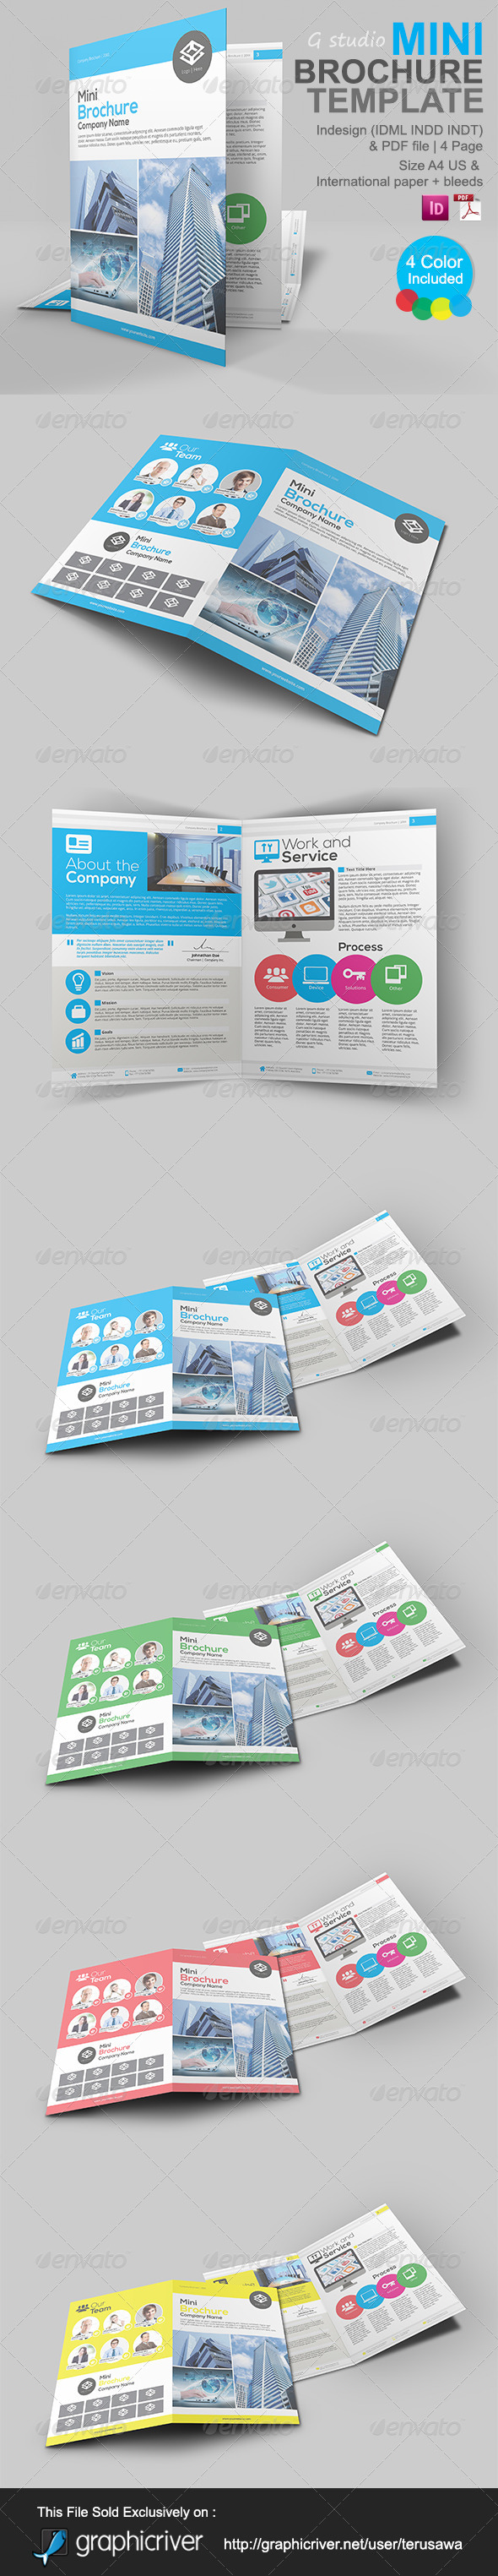 Gstudio Mini Brochure Template - Corporate Brochures